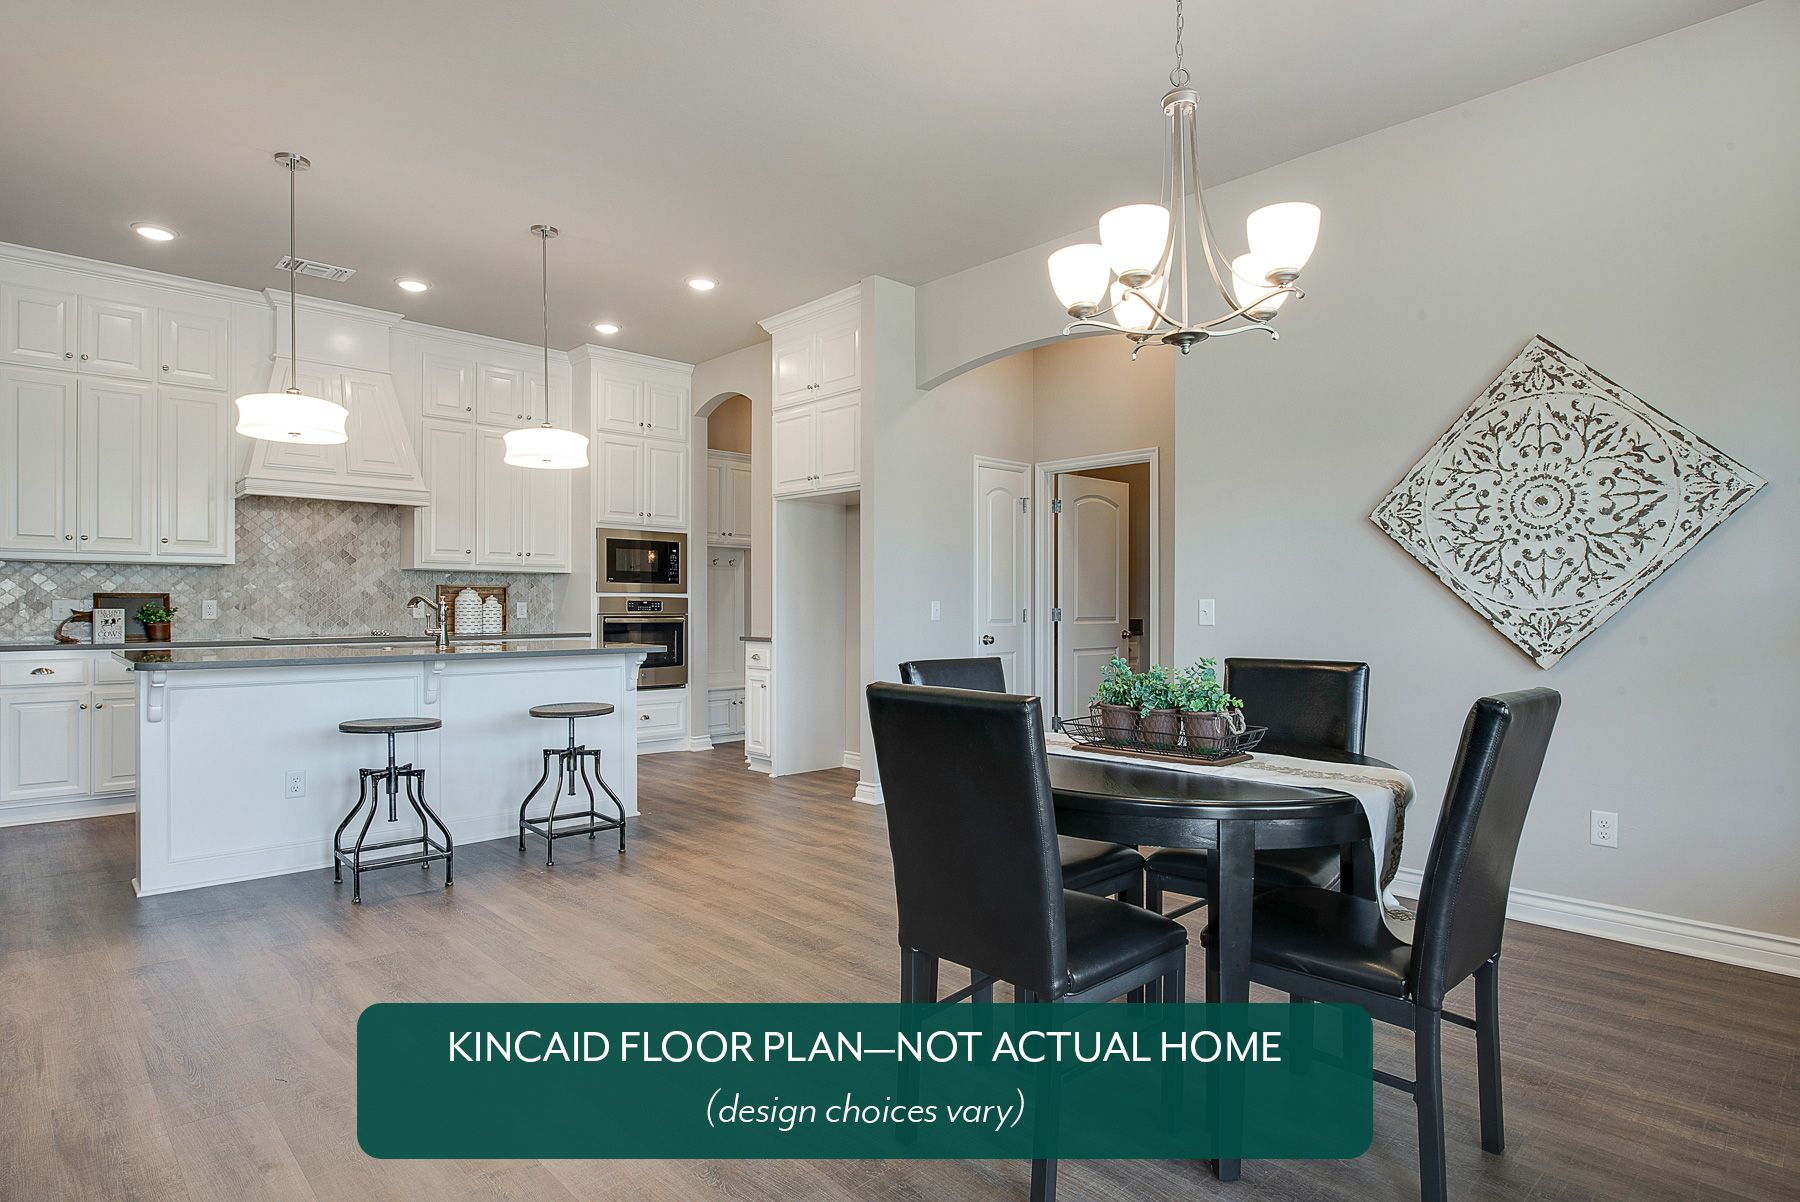 Kitchen featured in the 809 Scully Road By Ideal Homes in Oklahoma City, OK